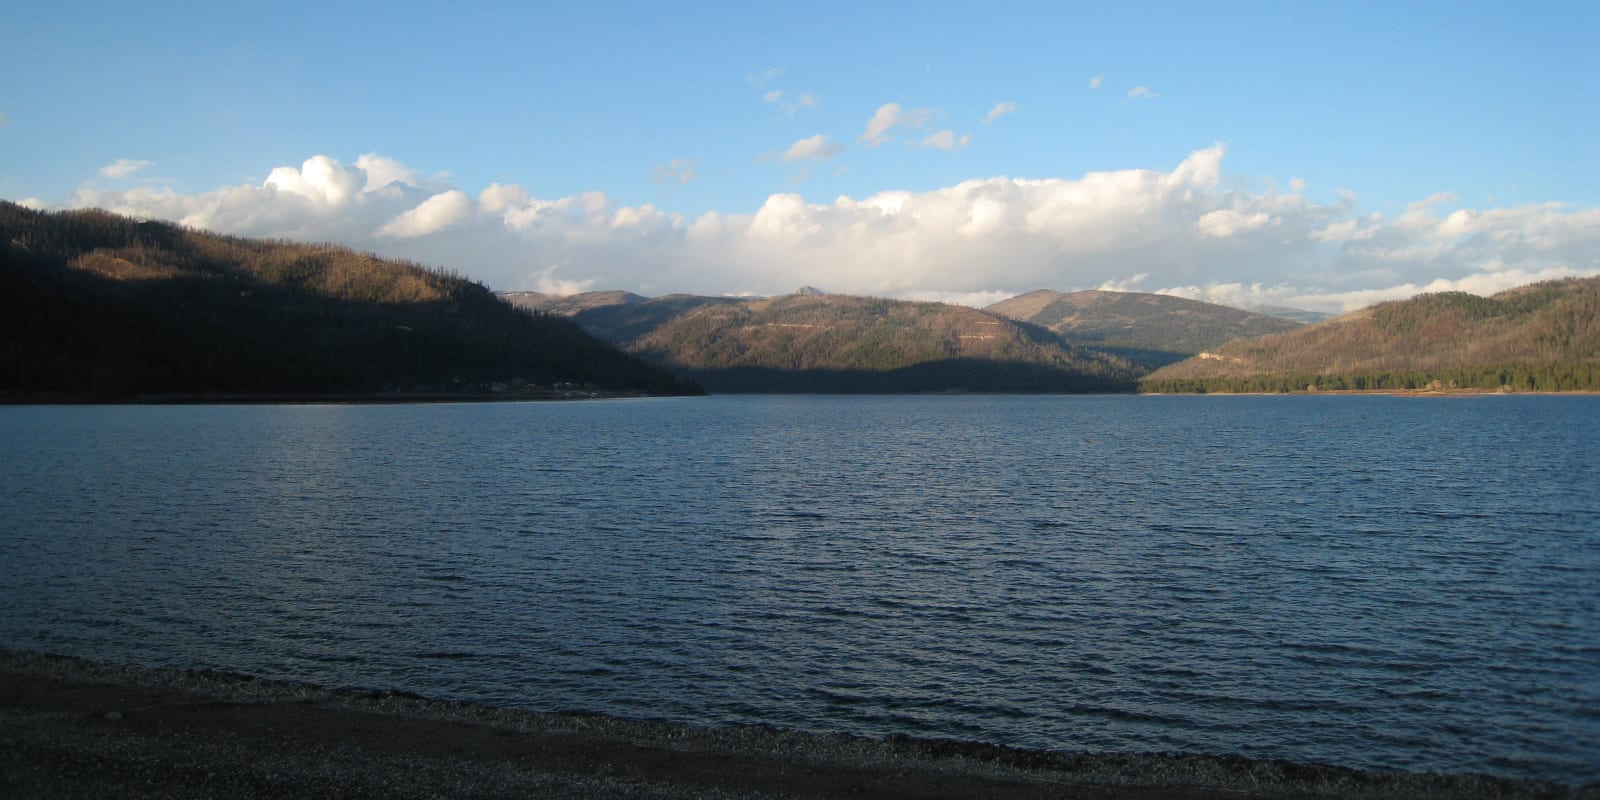 Vallecito Lake Bayfield Colorado